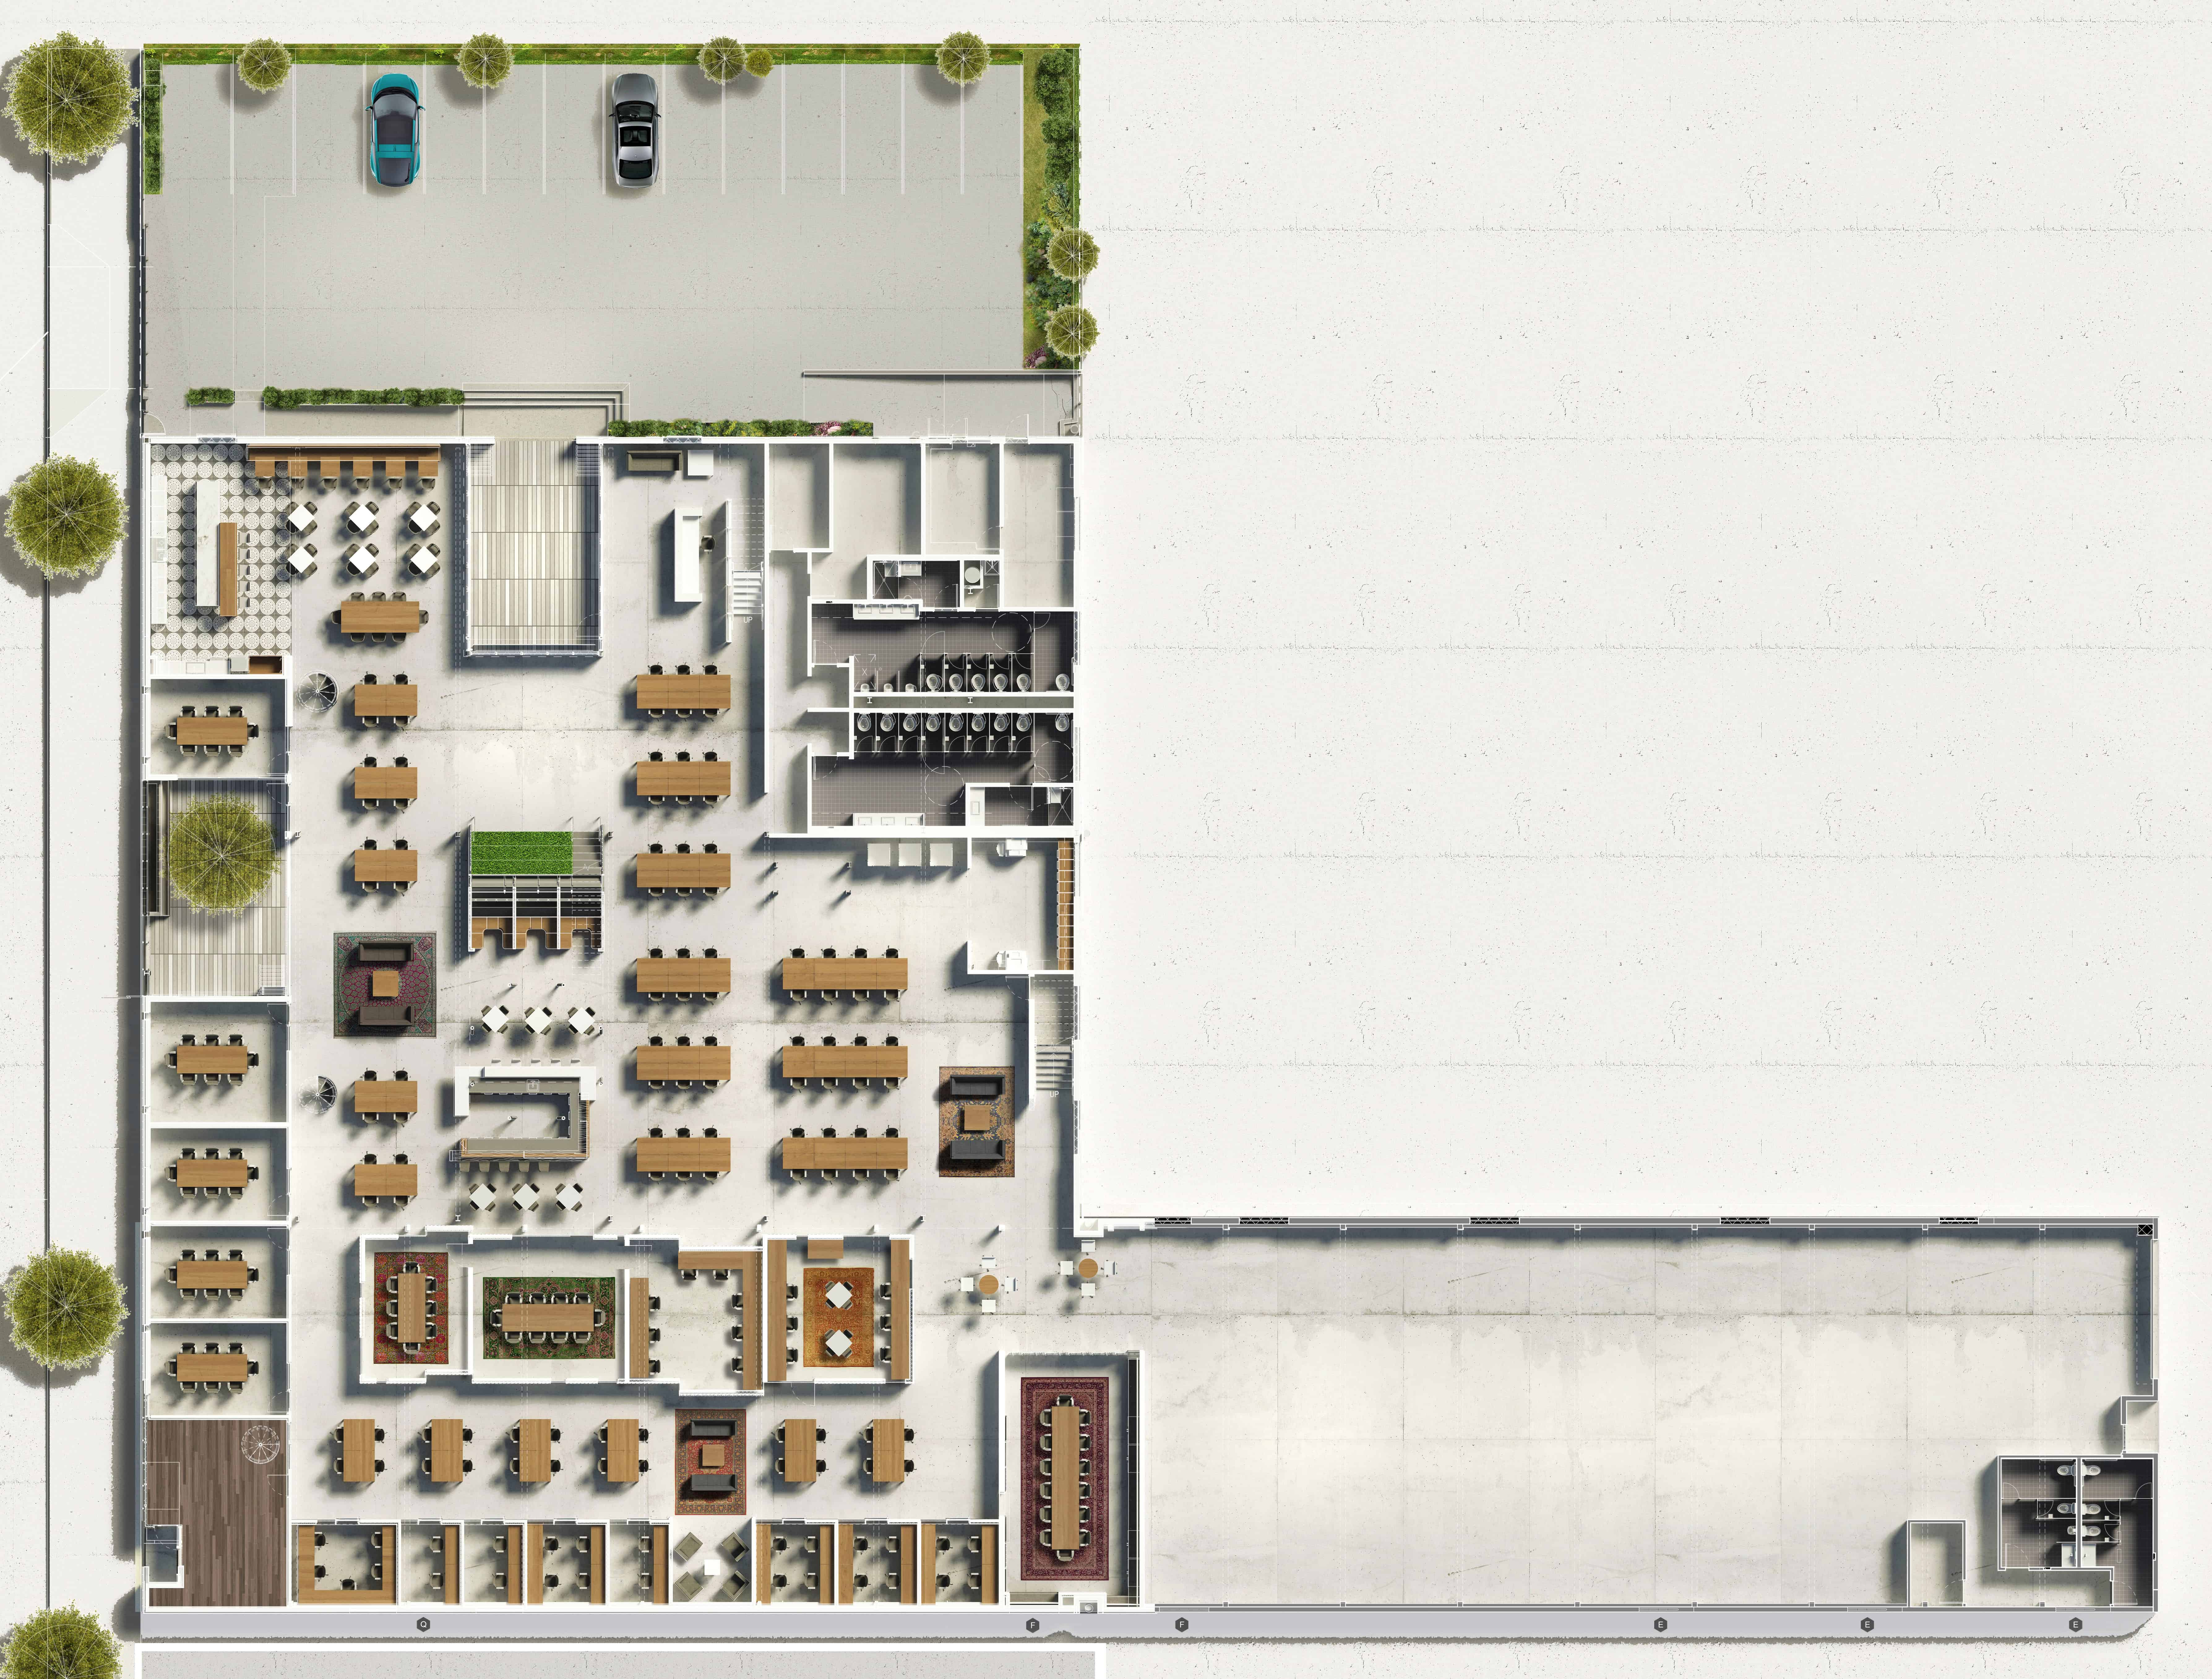 1422_720 N. Cahuenga_150205_FINAL PLAN